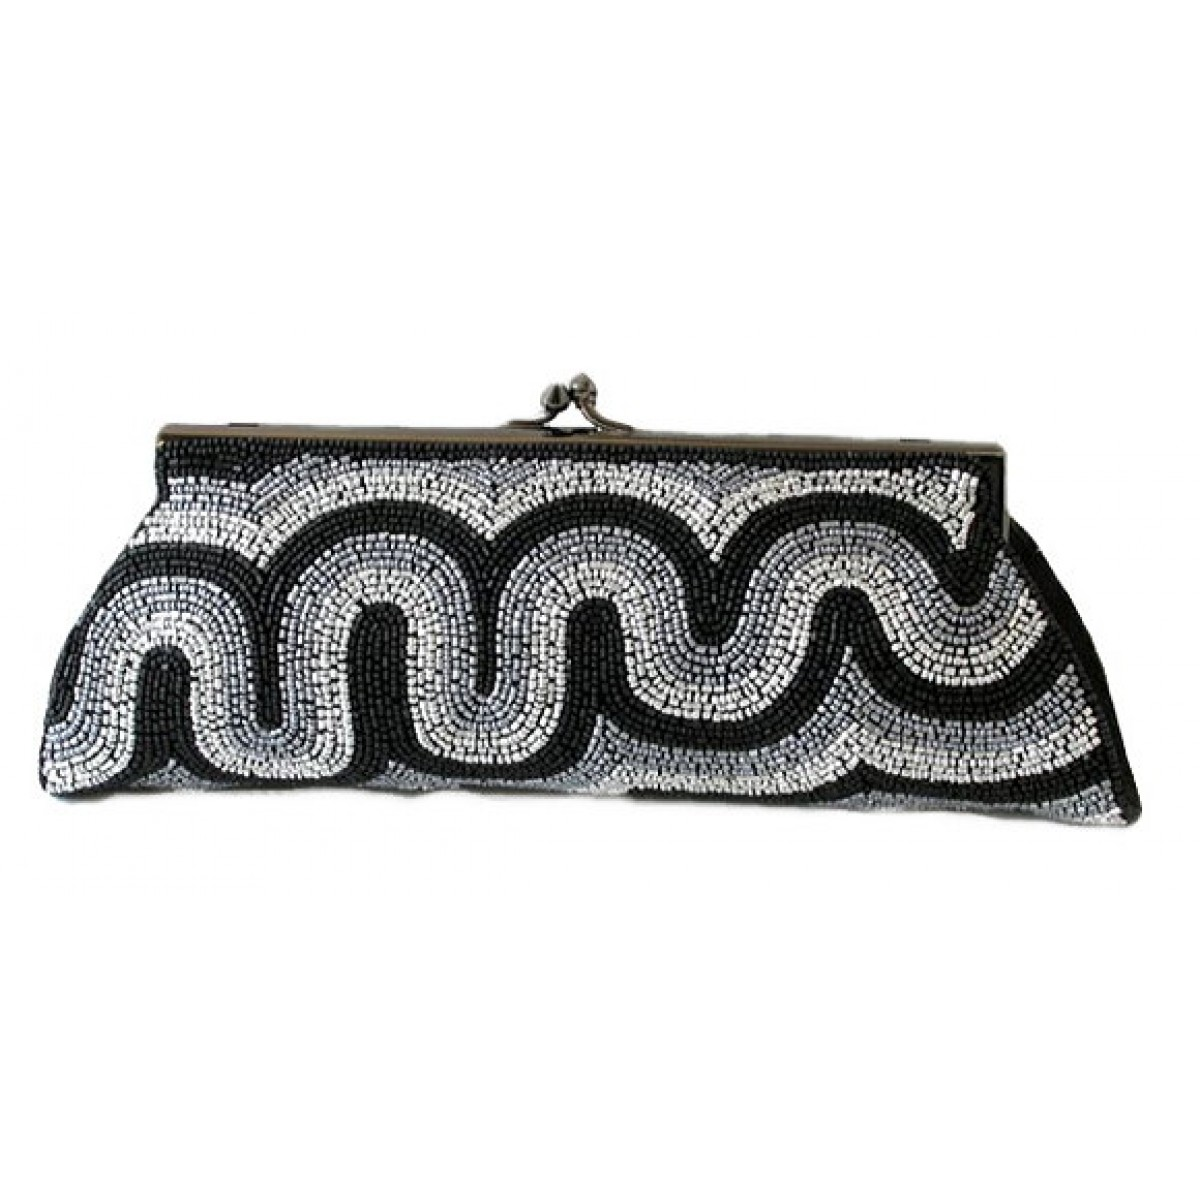 Framed Clutch with Swirl Beading